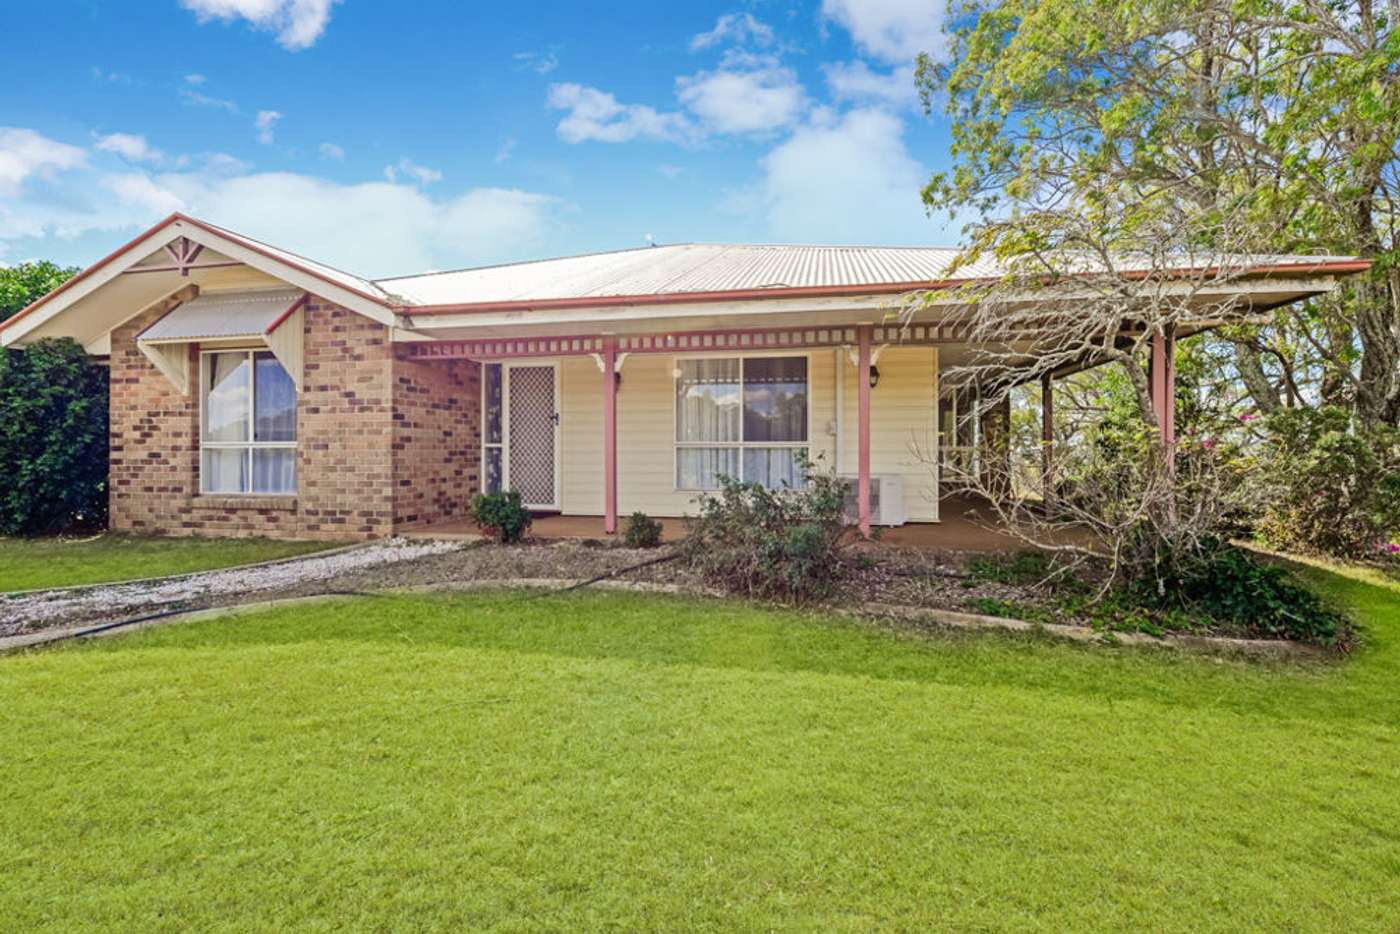 Main view of Homely house listing, 7 Ryans Drive, Cotswold Hills QLD 4350